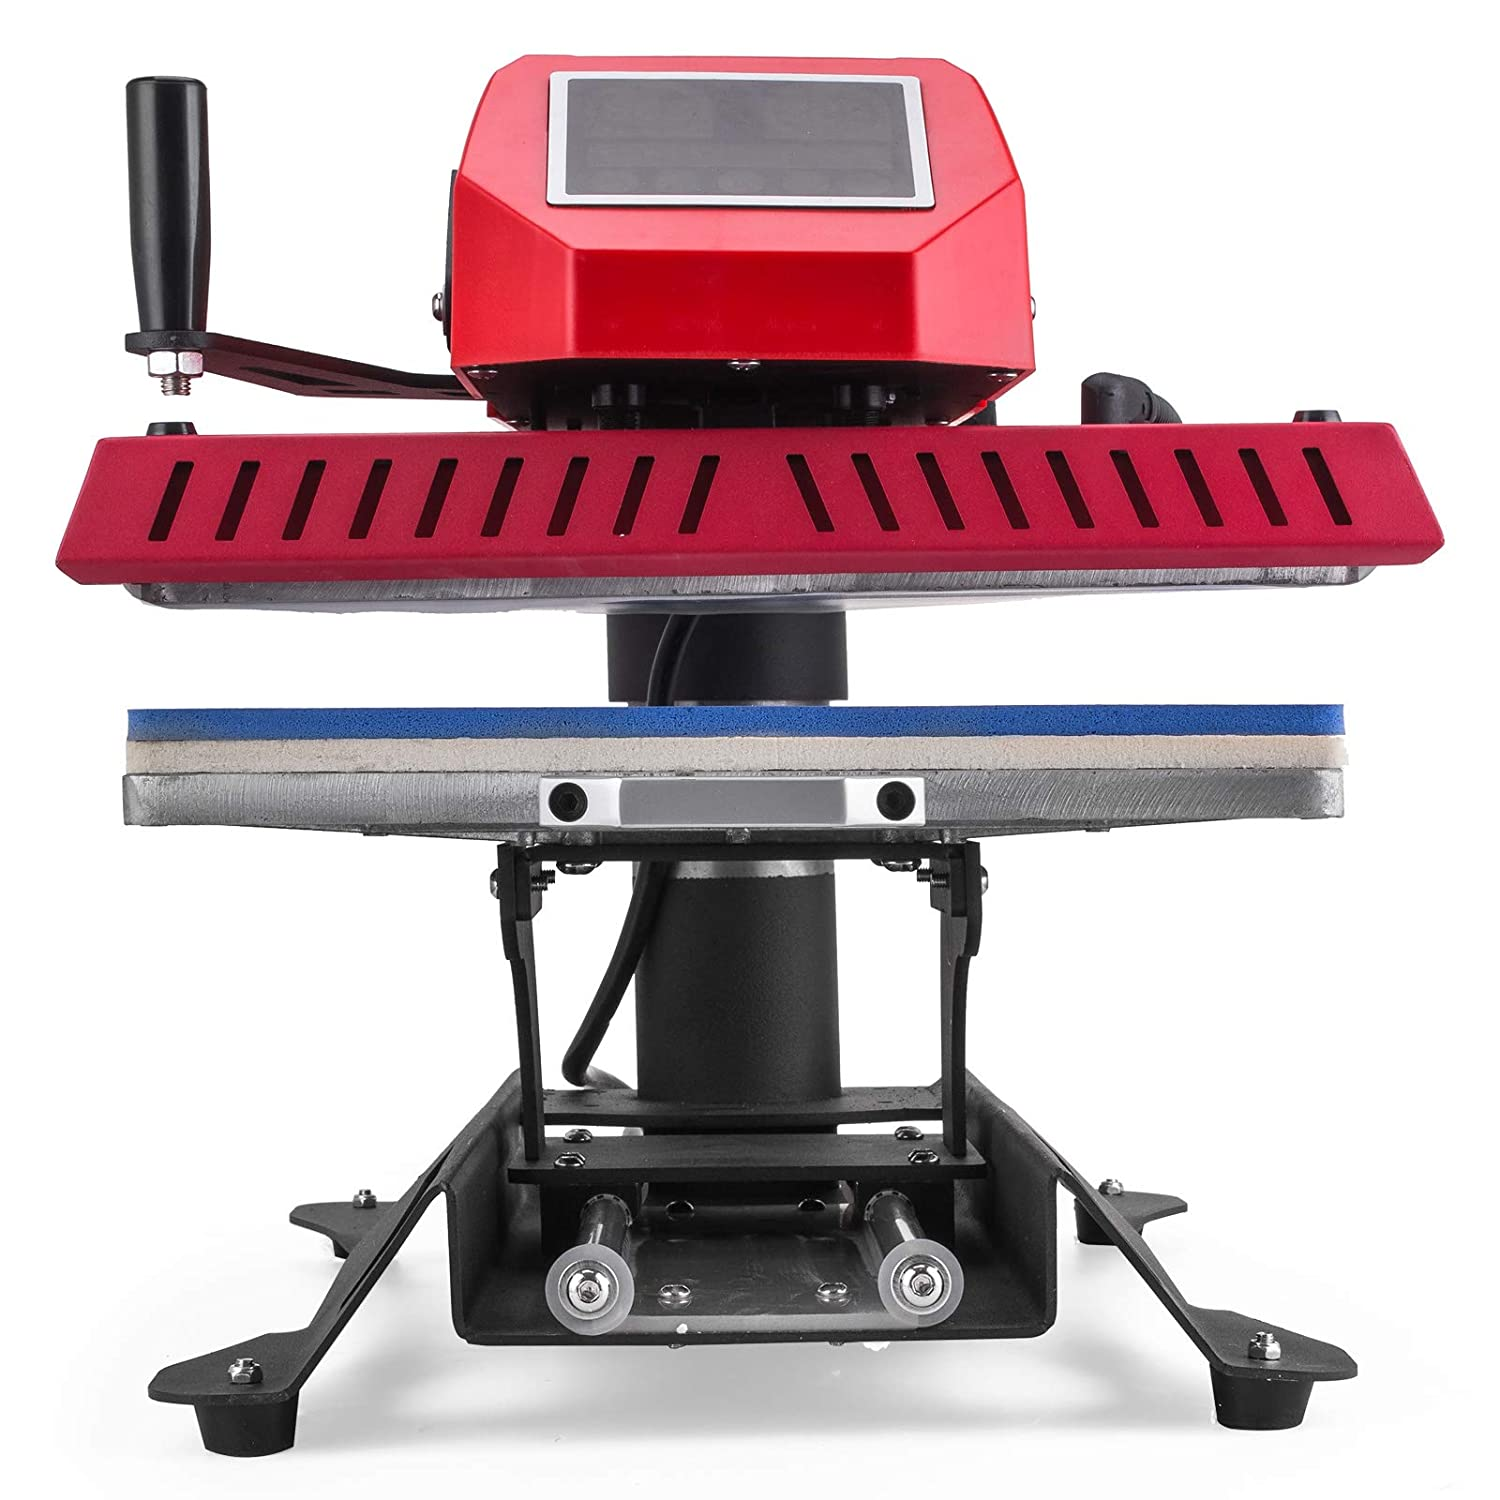 Mophorn Heat Press 12x15 inch 8N1 Multifunctional Heat Press Machine Transfer Combo Swing-Away Heat Press Machine for T Shirts Mug Hat Press LED Digital Controller